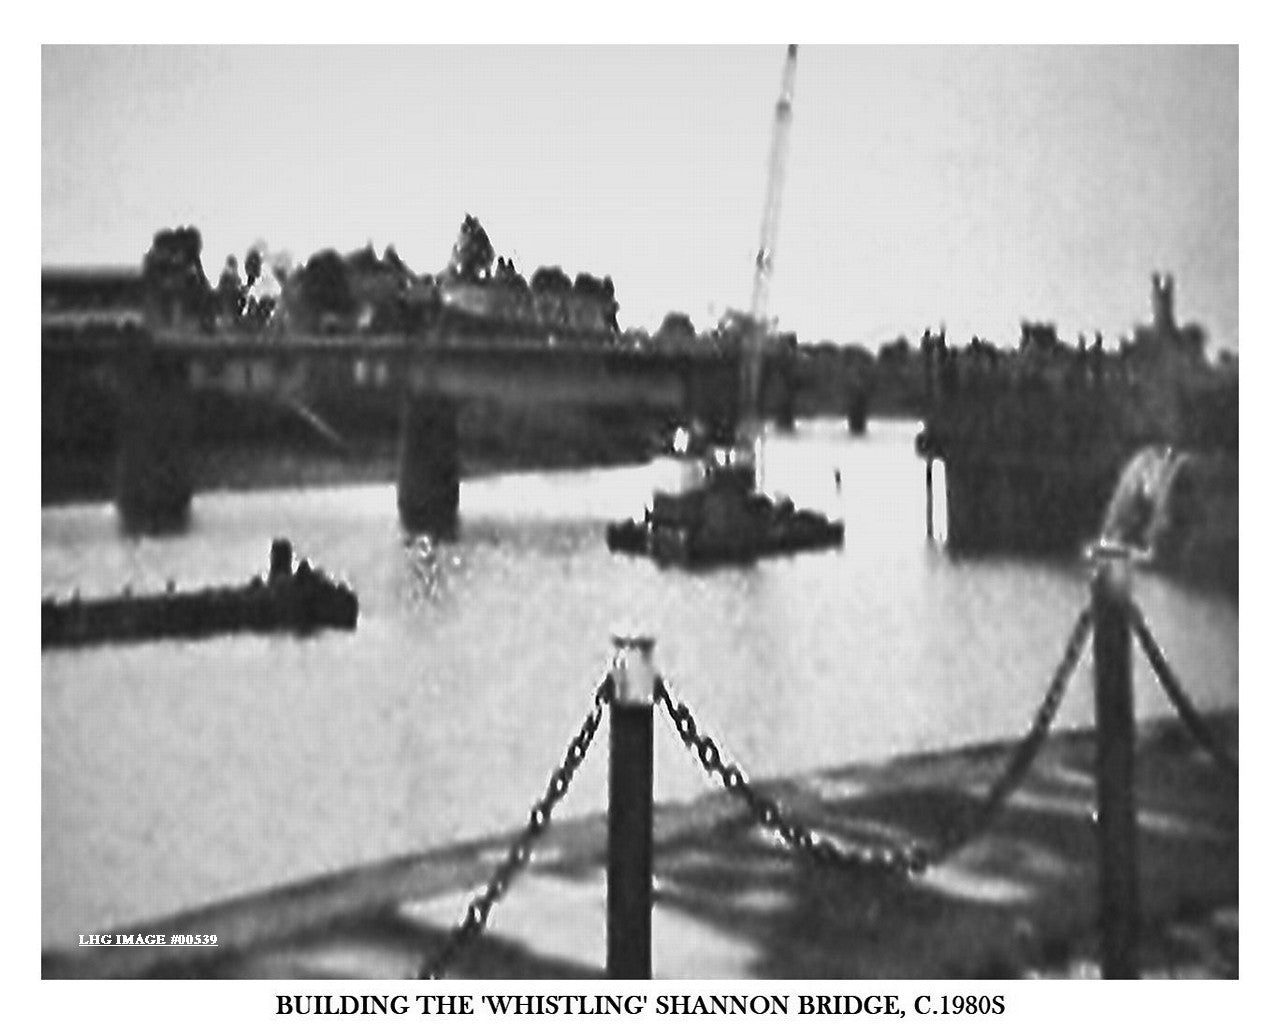 BUILDING THE 'WHISTLING' SHANNON BRIDGE, C.1980S